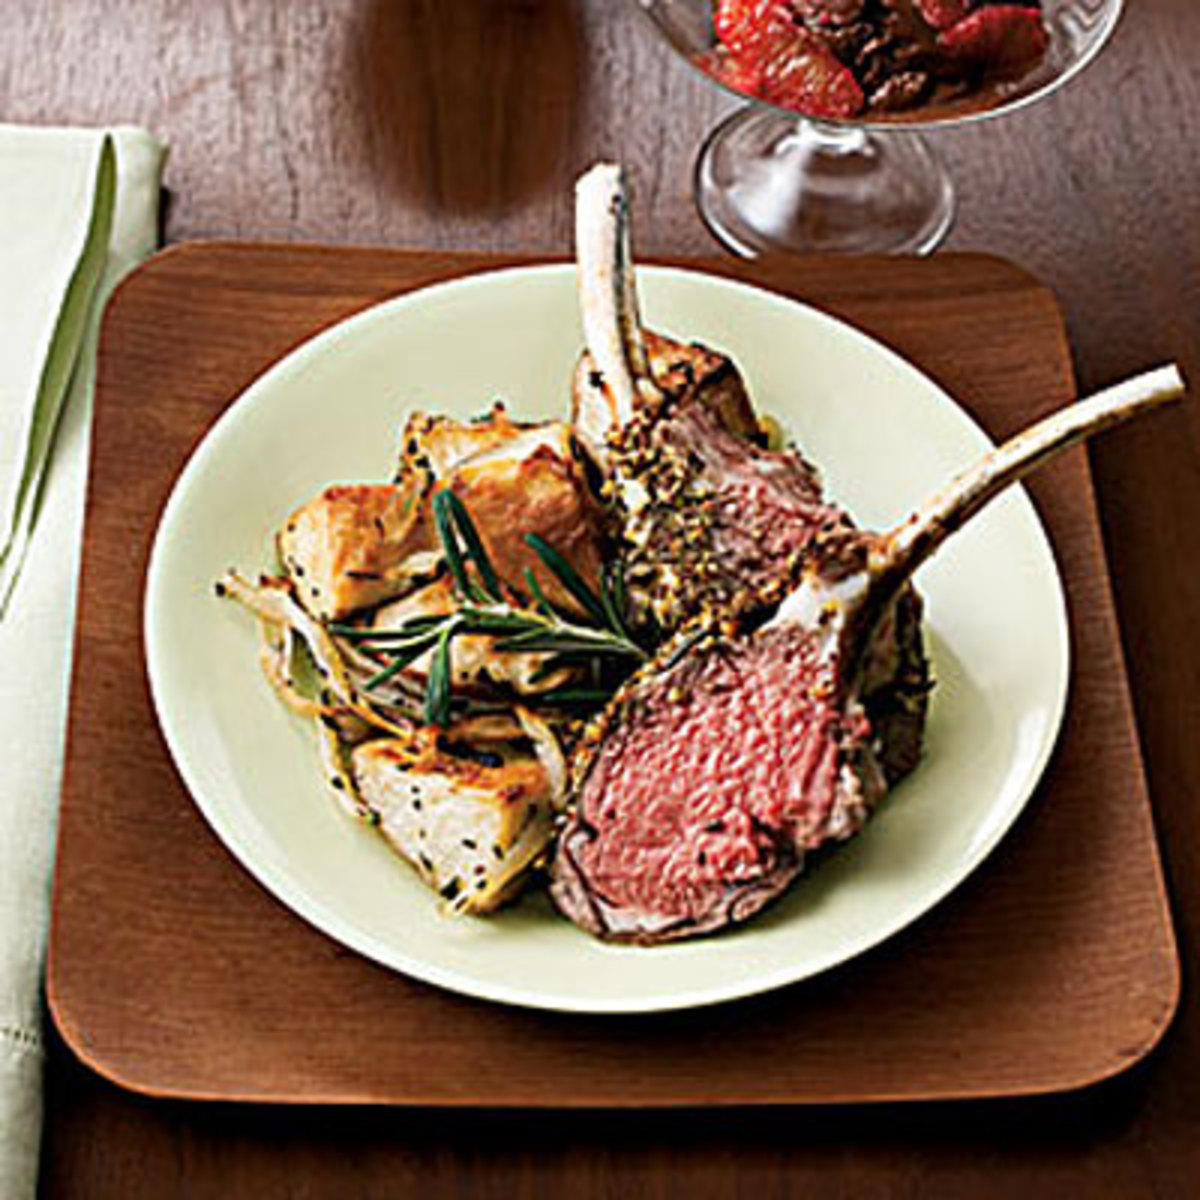 A fresh rosemary sprig is added to lamb chops.